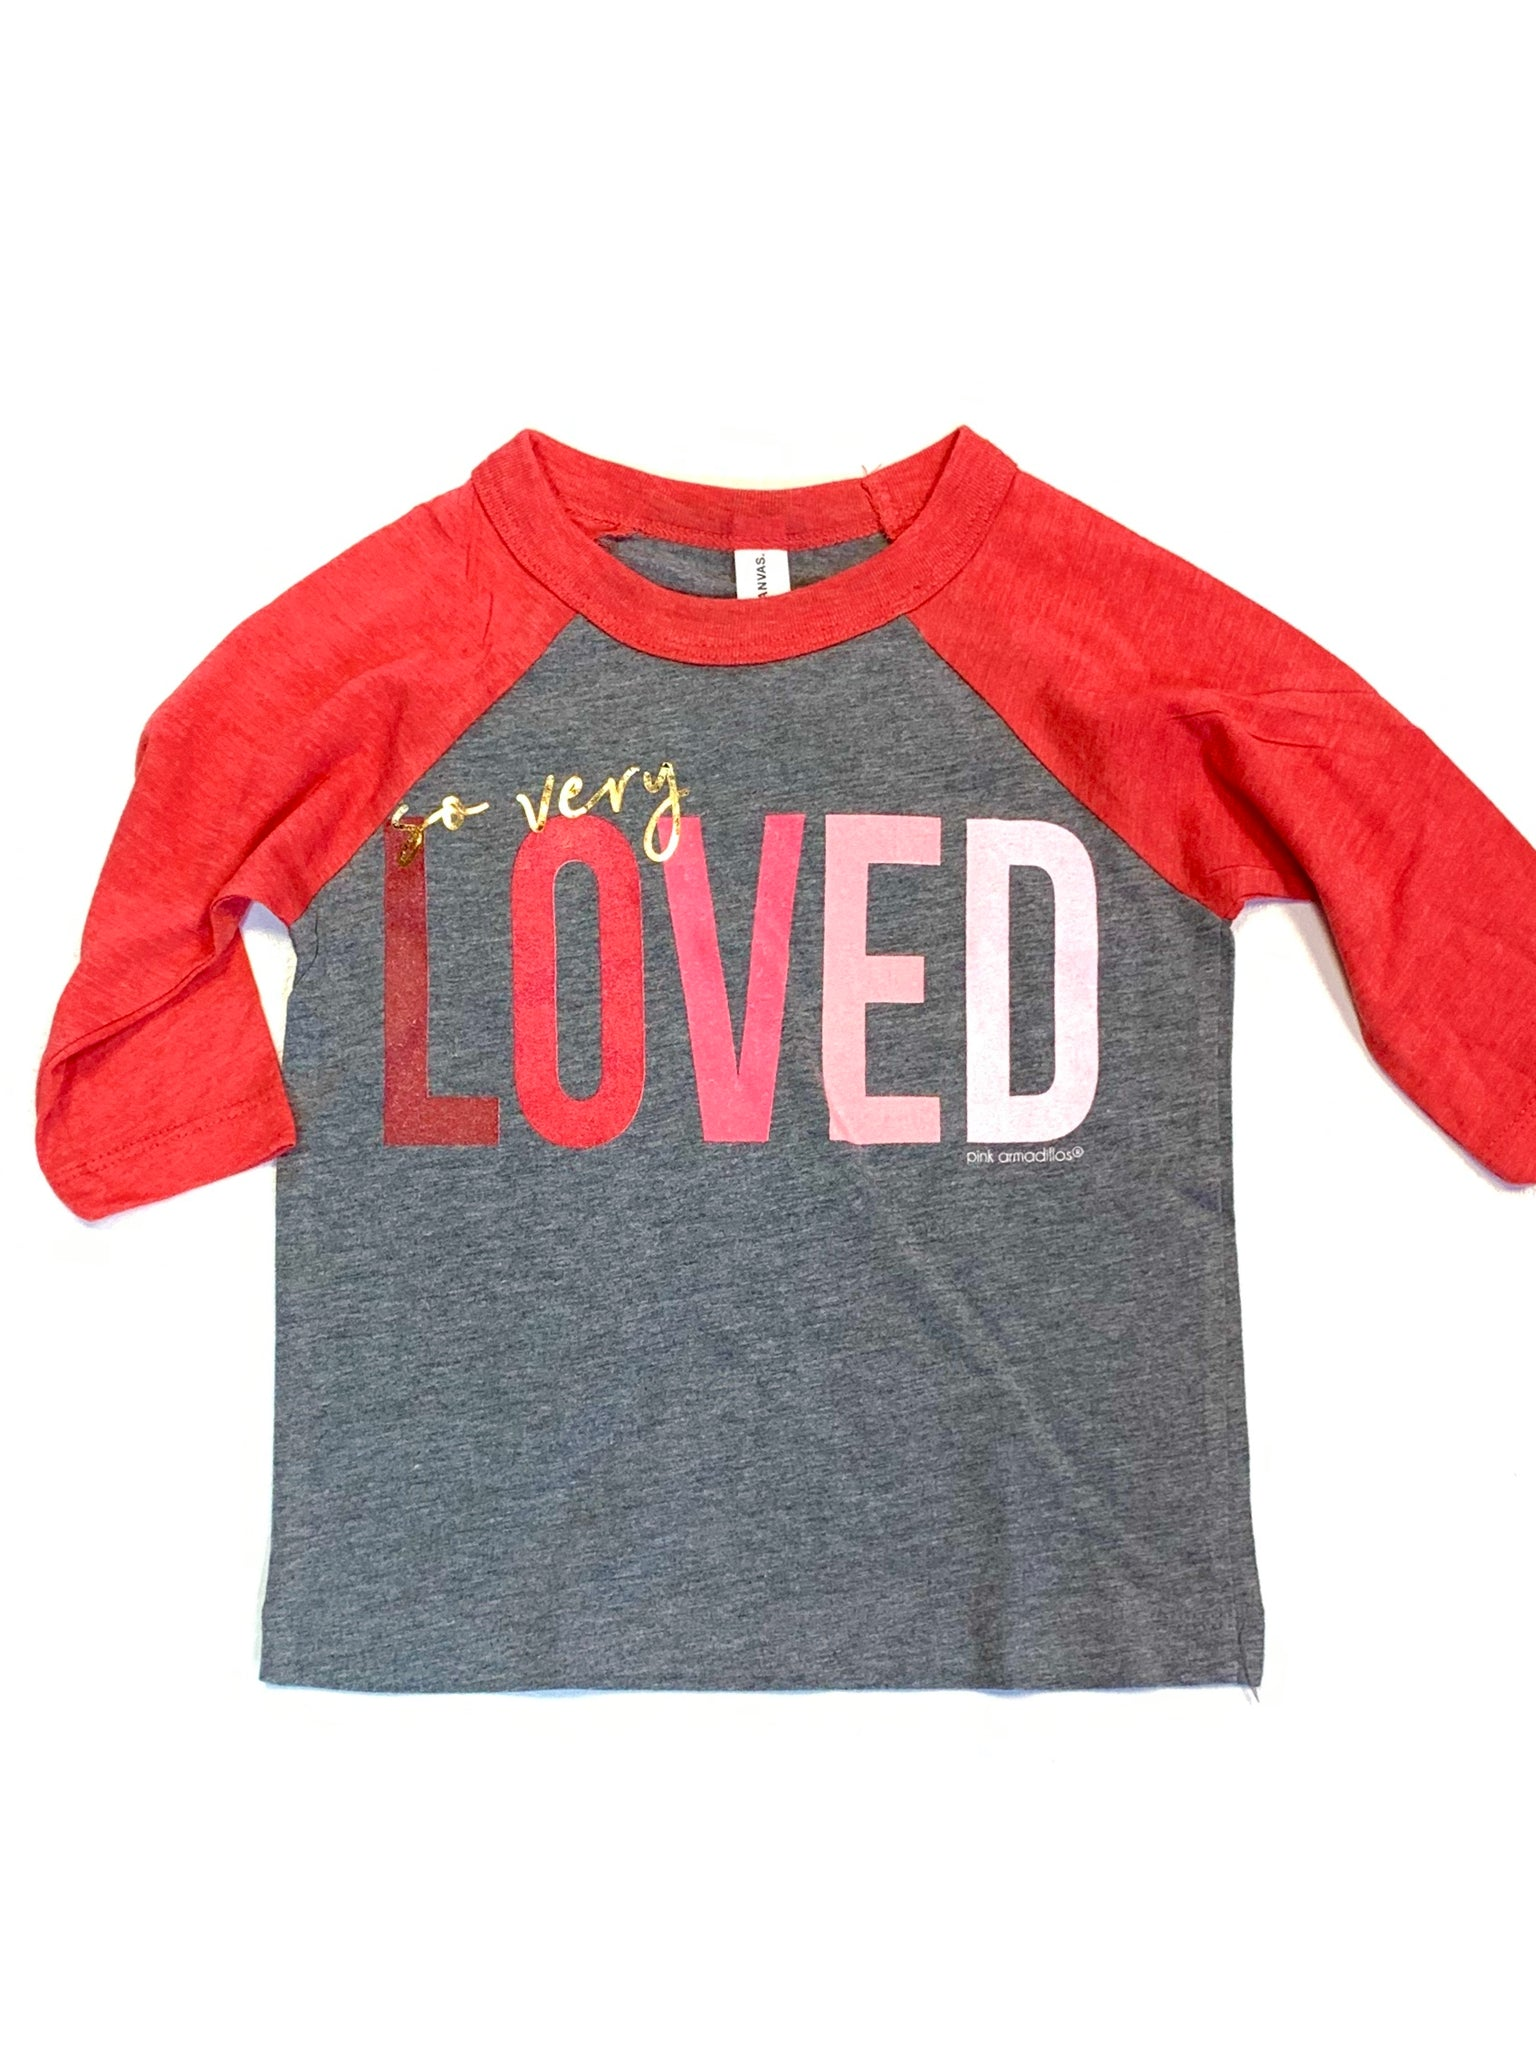 So Very Loved Kids Graphic Tee